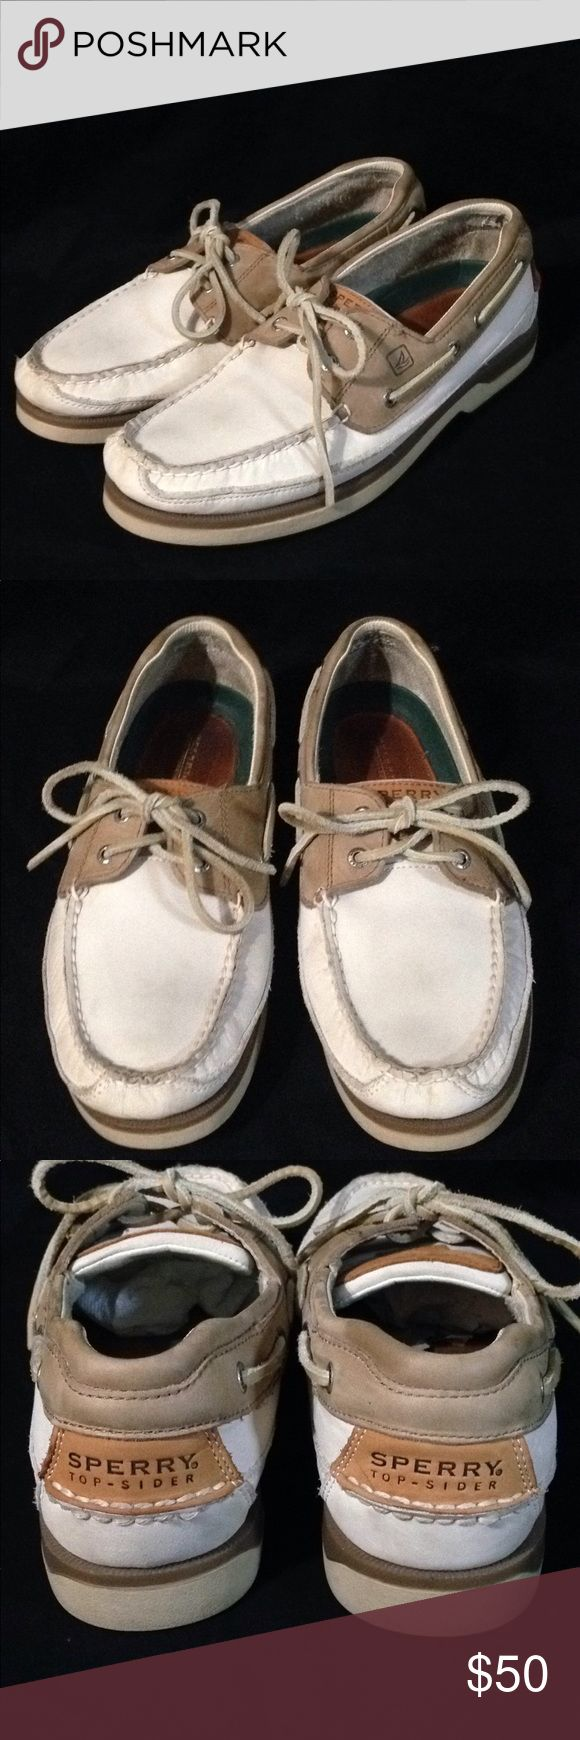 Sperry Top-Sider Men's Mako Collection Shoes These shoes are in excellent used condition. They are a re-Posh. I got them for my husband and he didn't like the light color. Sperry Top-Sider Shoes Boat Shoes